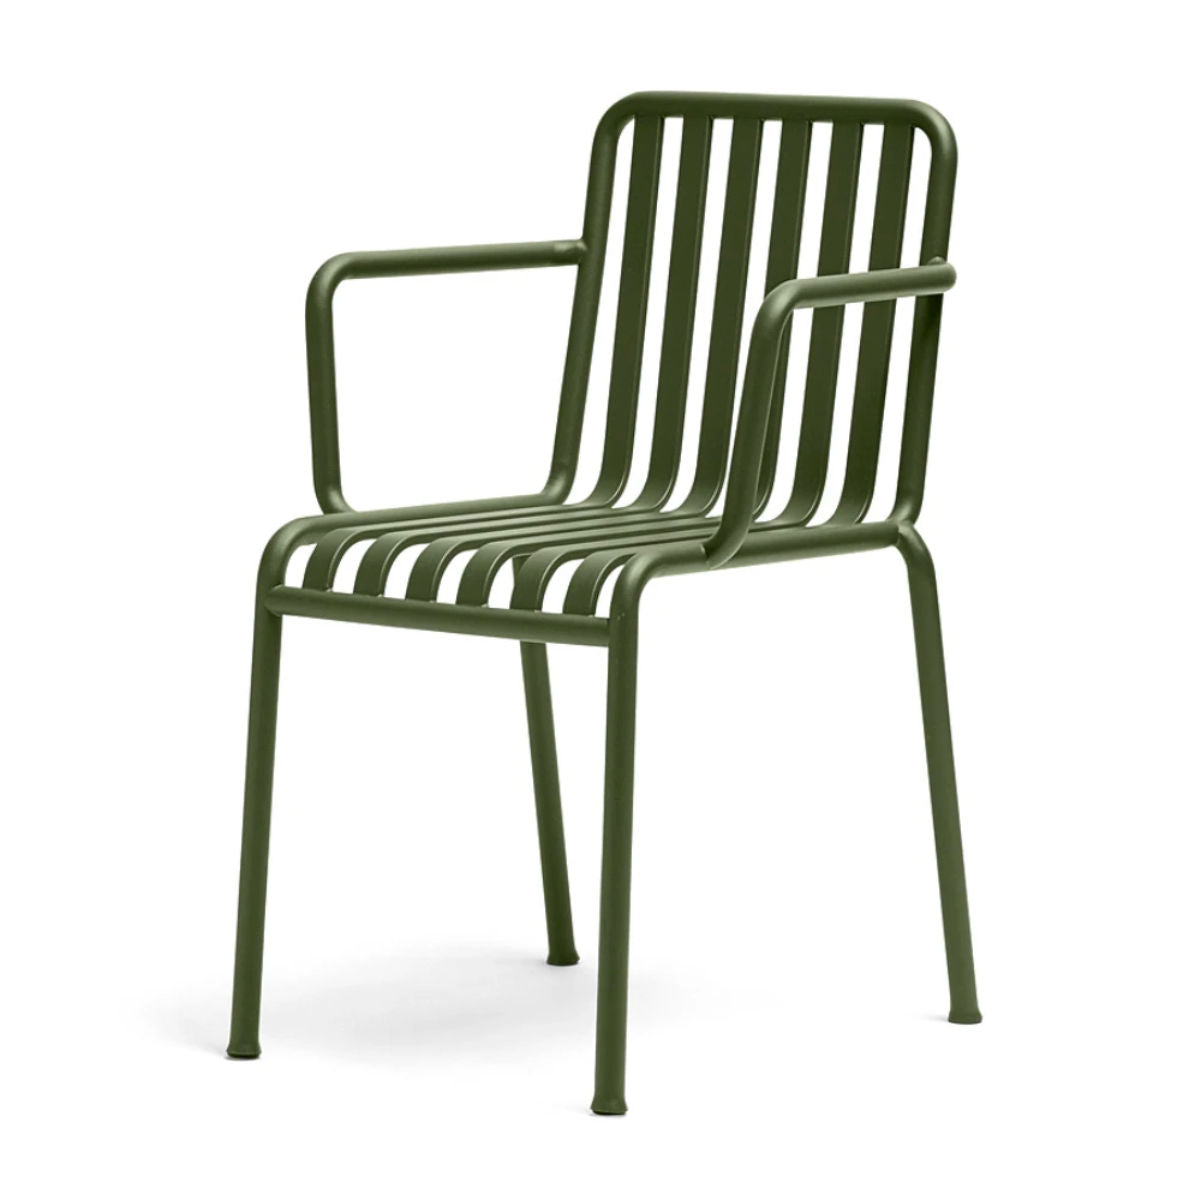 HAY Palissade Armchair 51 x 56cm